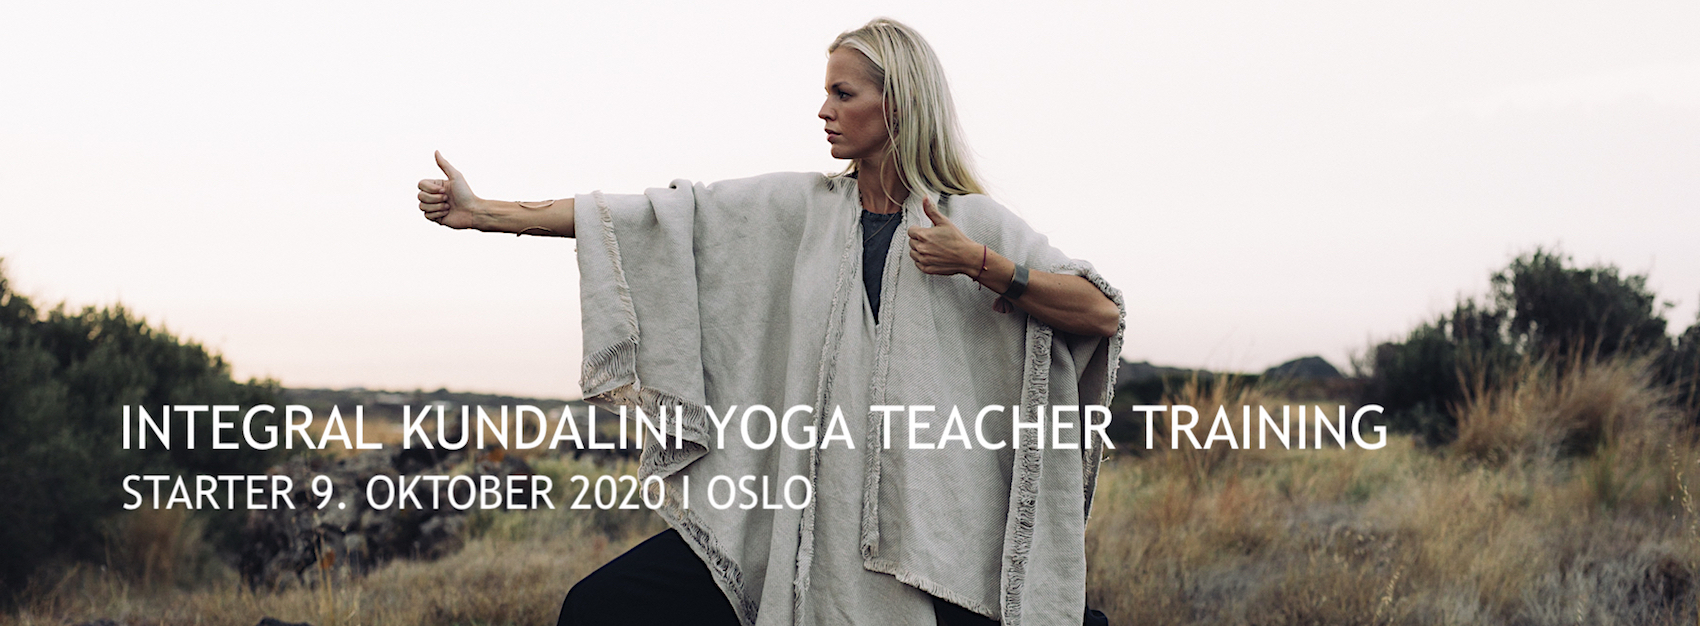 INTEGRAL KUNDALINI YOGA EDUCATION